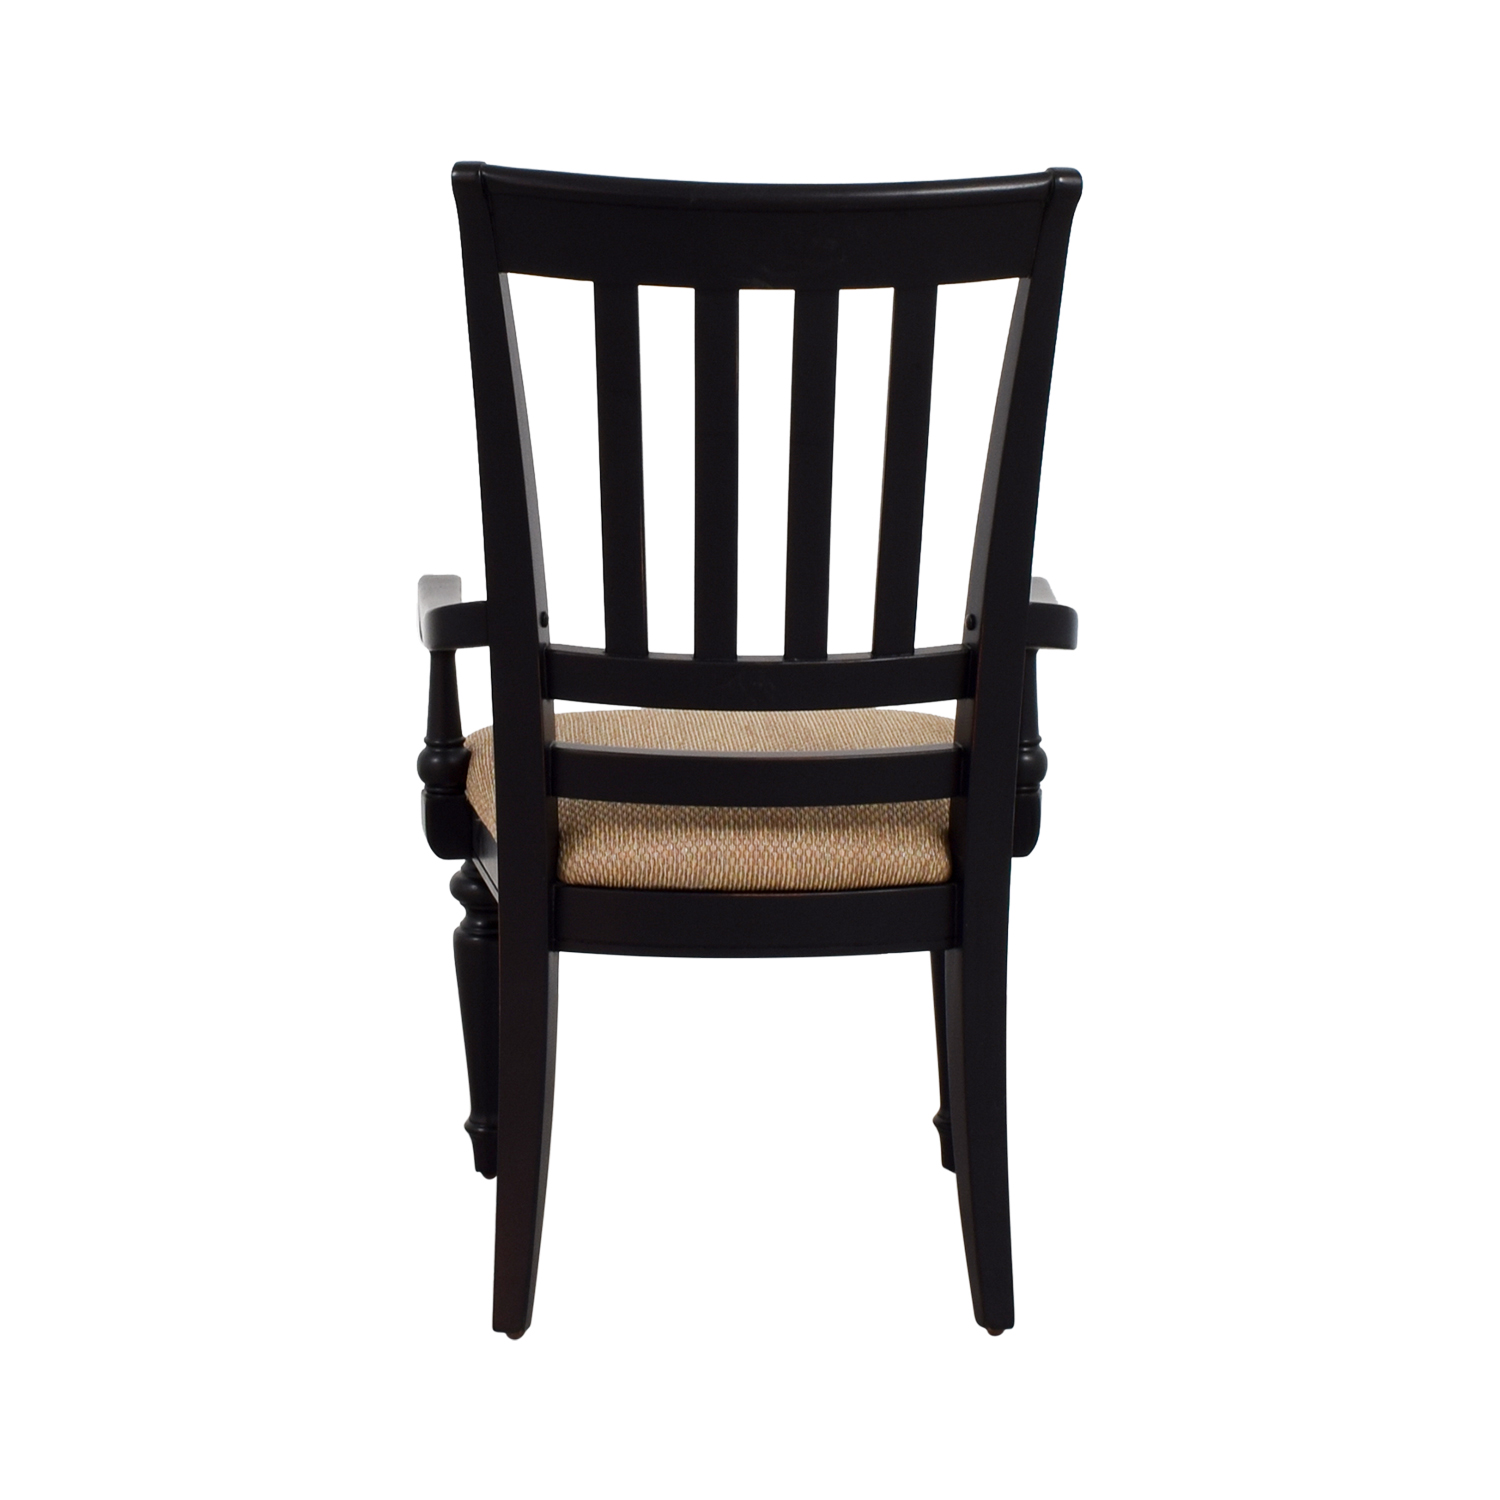 Black Arm Chair with Beige Upholstered Padded Seat price